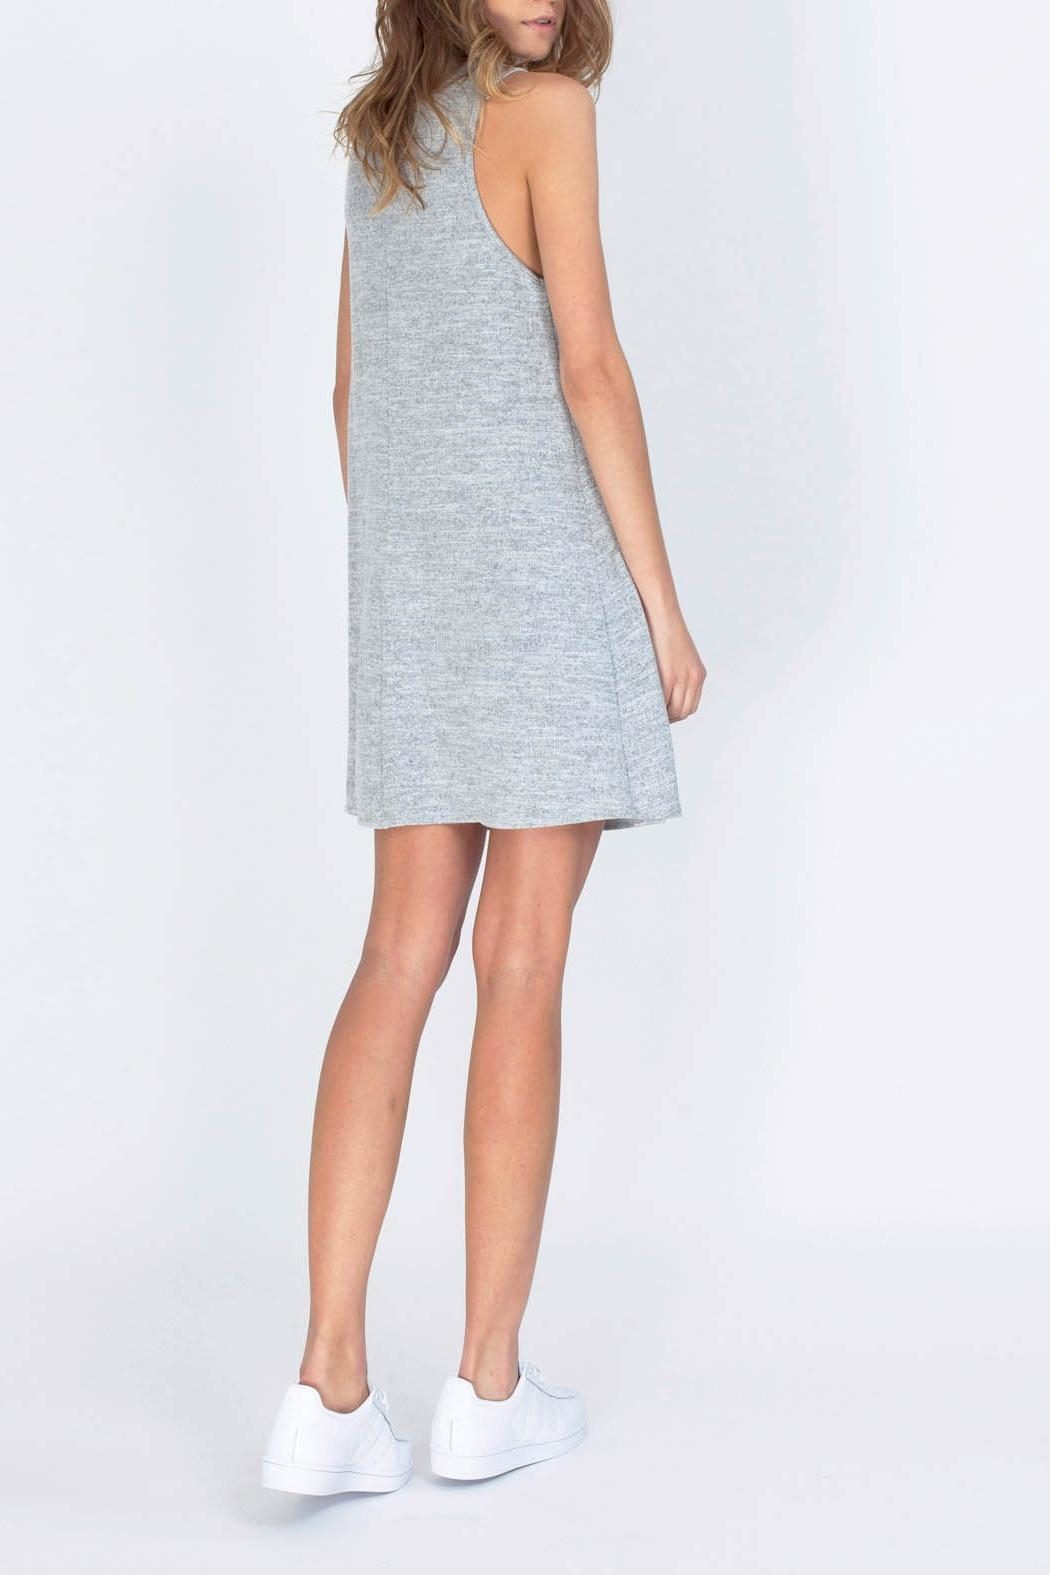 Gentle Fawn Motivate Dress - Side Cropped Image